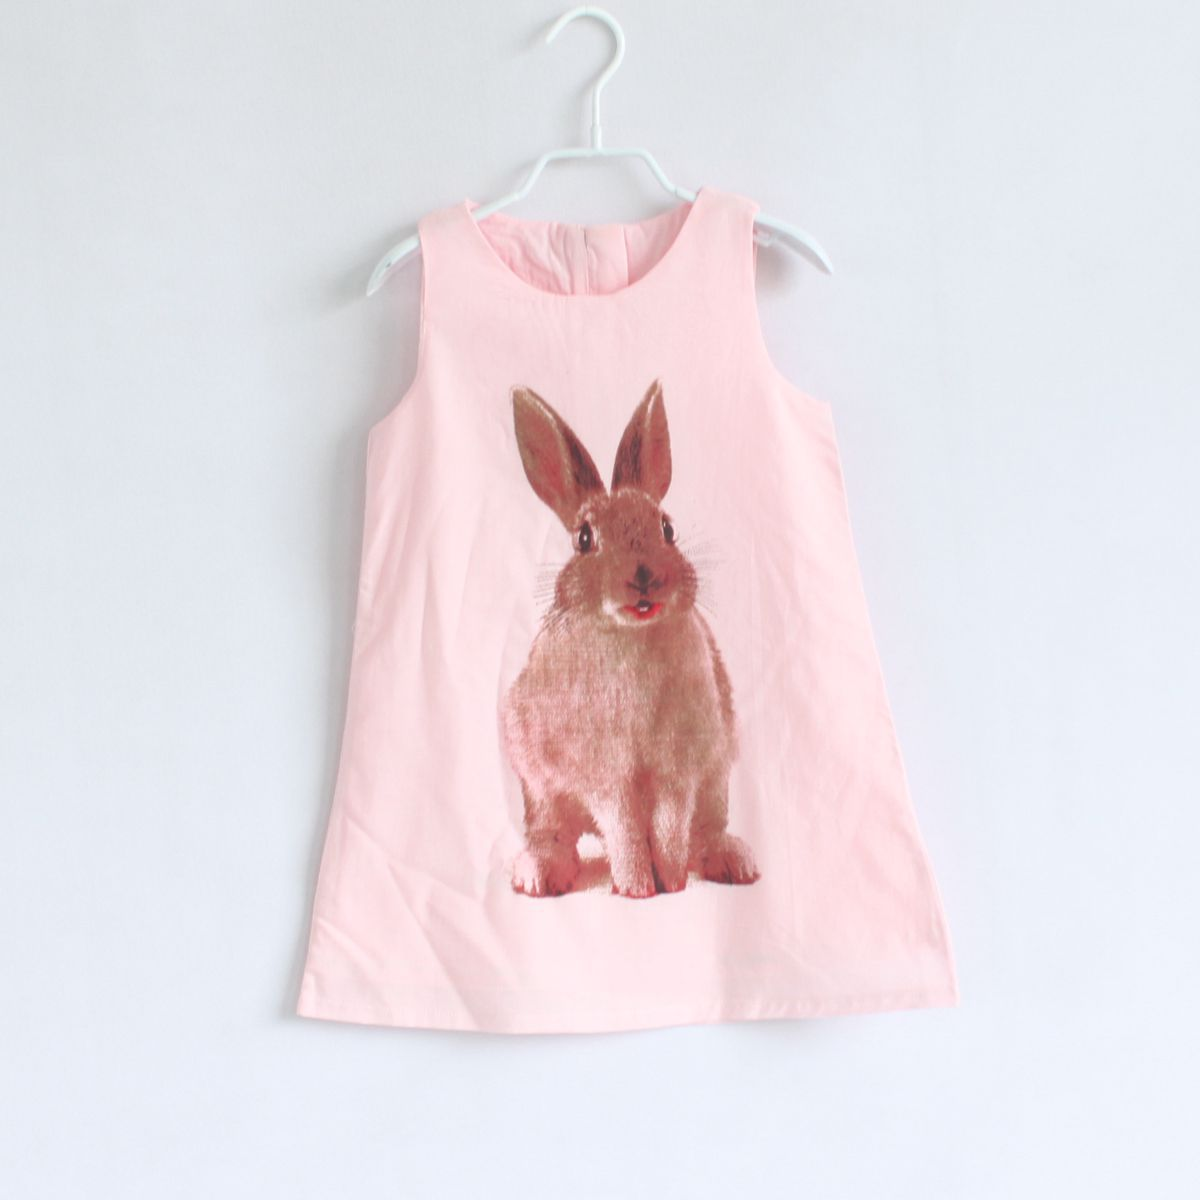 2015 Summer style animal puppy/rabbit A-line baby girls dress kids clothes children clothing(China (Mainland))